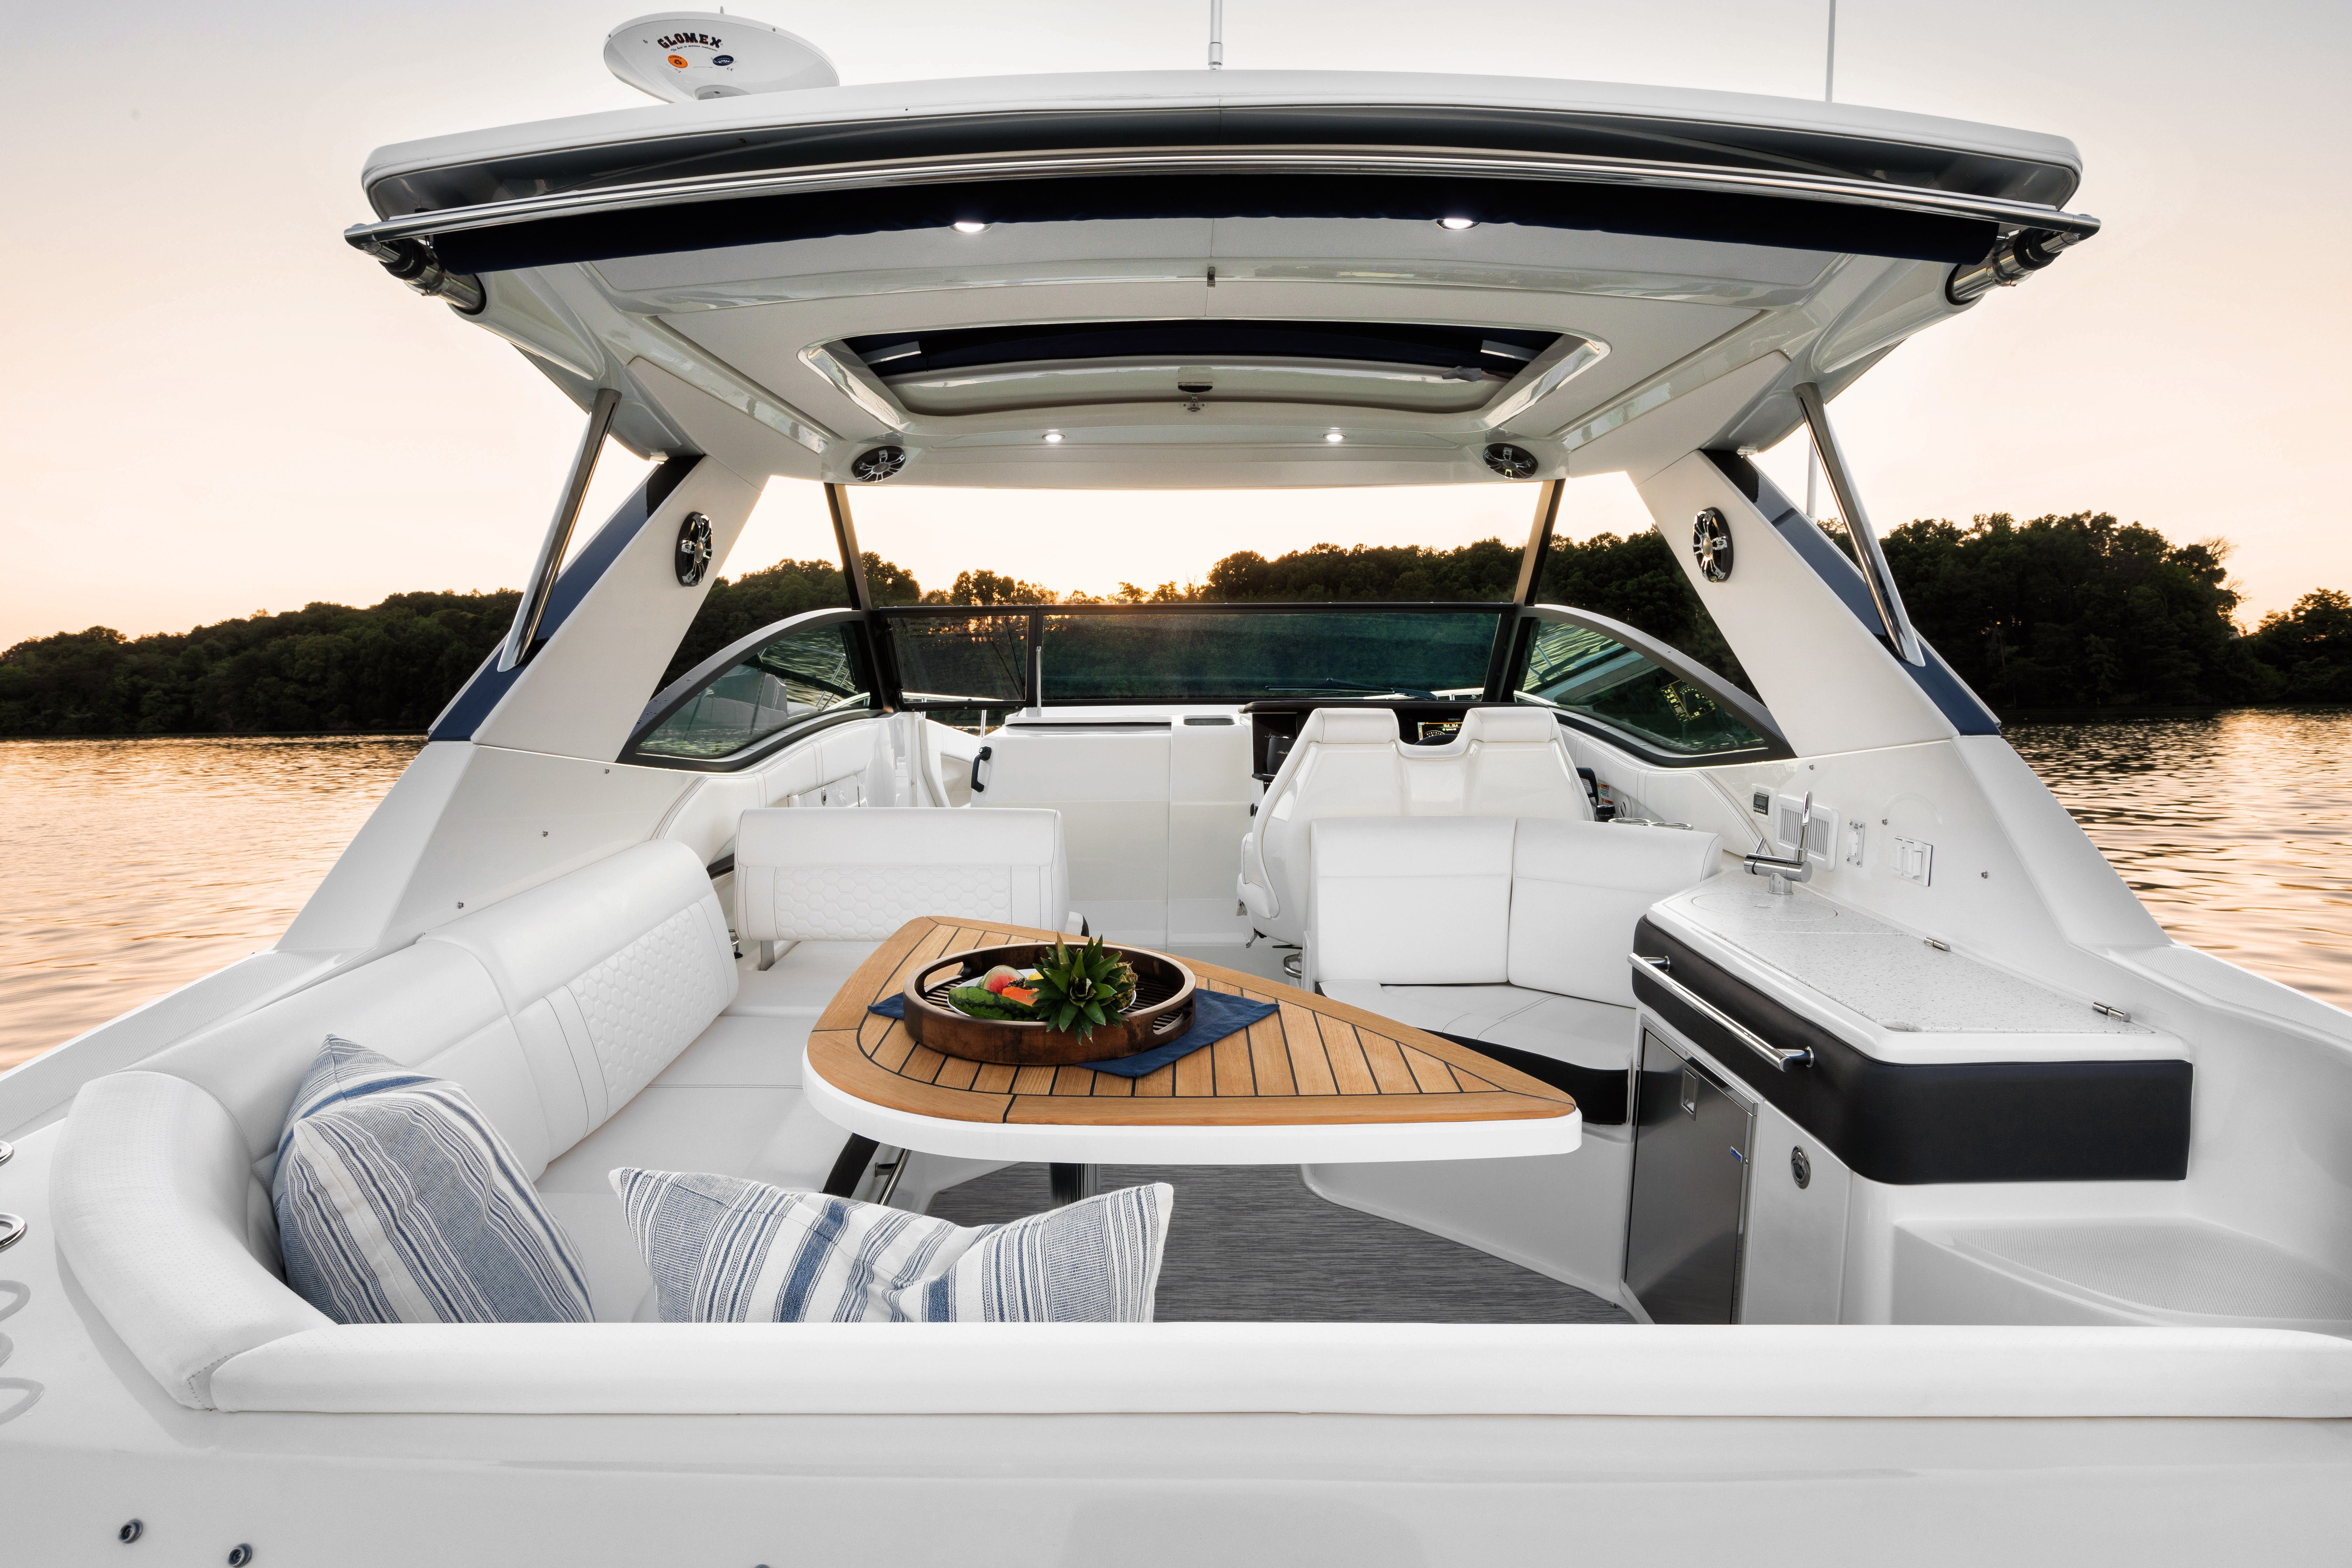 2021 Sea Ray boat for sale, model of the boat is 320 Sundancer & Image # 15 of 24